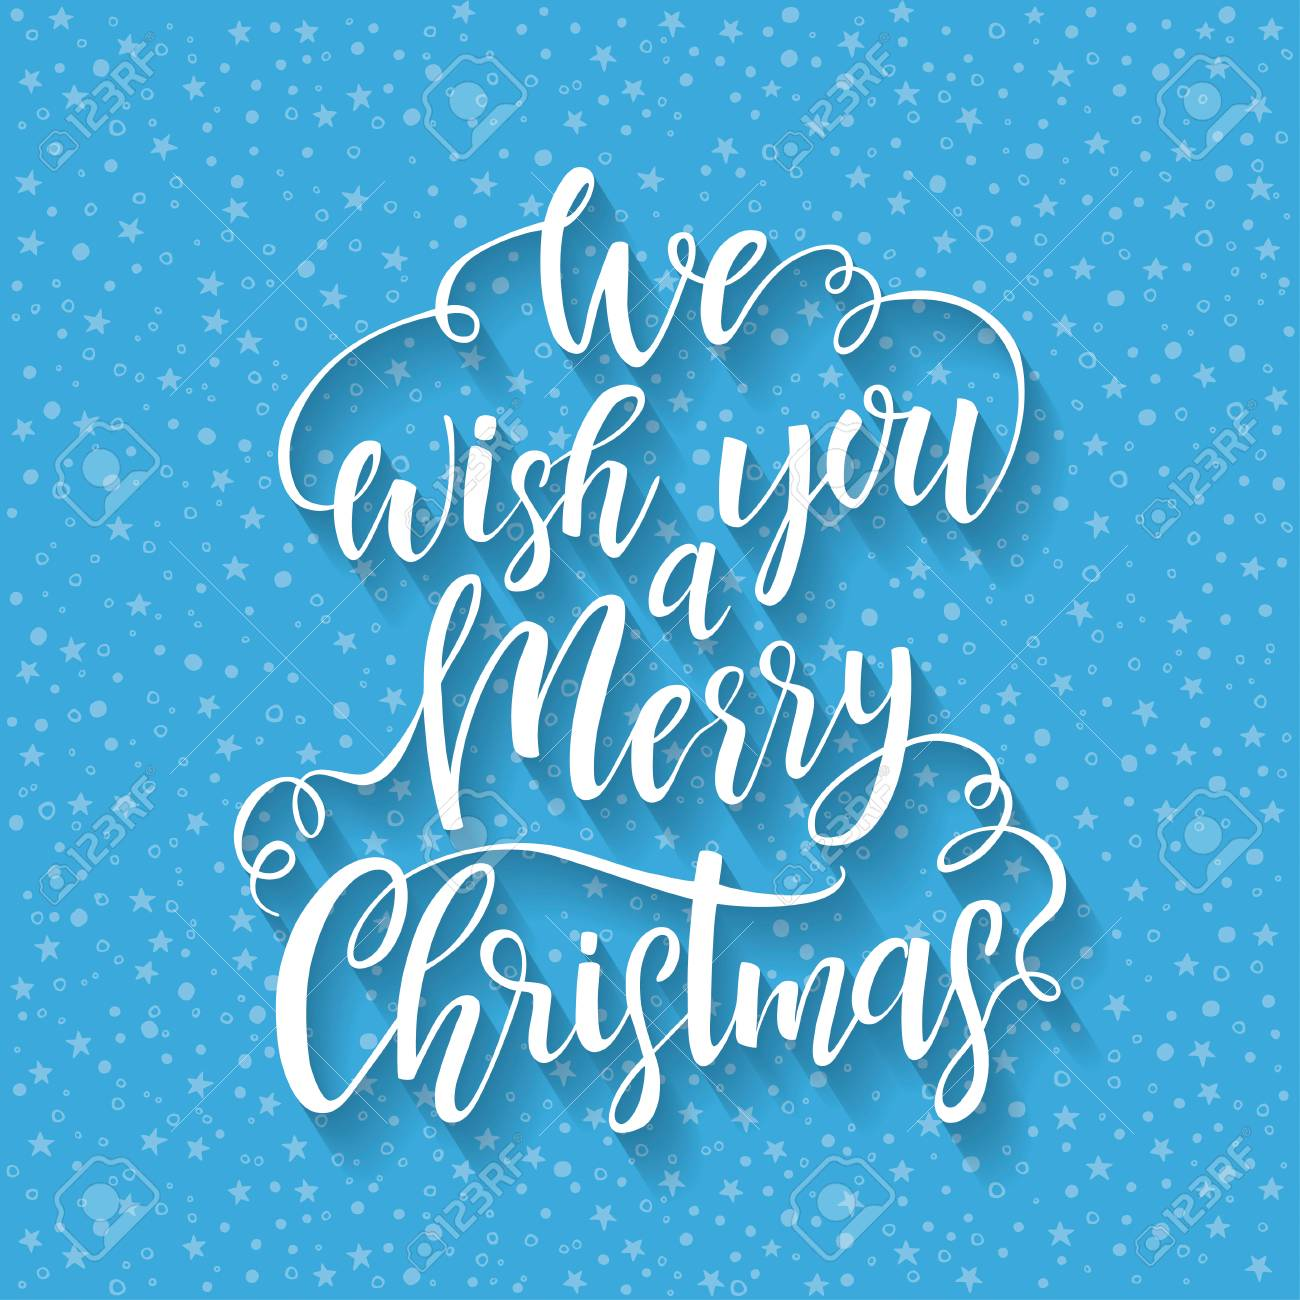 Hand Drawn Lettering We Wish You A Merry Christmas Vector Design Royalty Free Cliparts Vectors And Stock Illustration Image 68721428